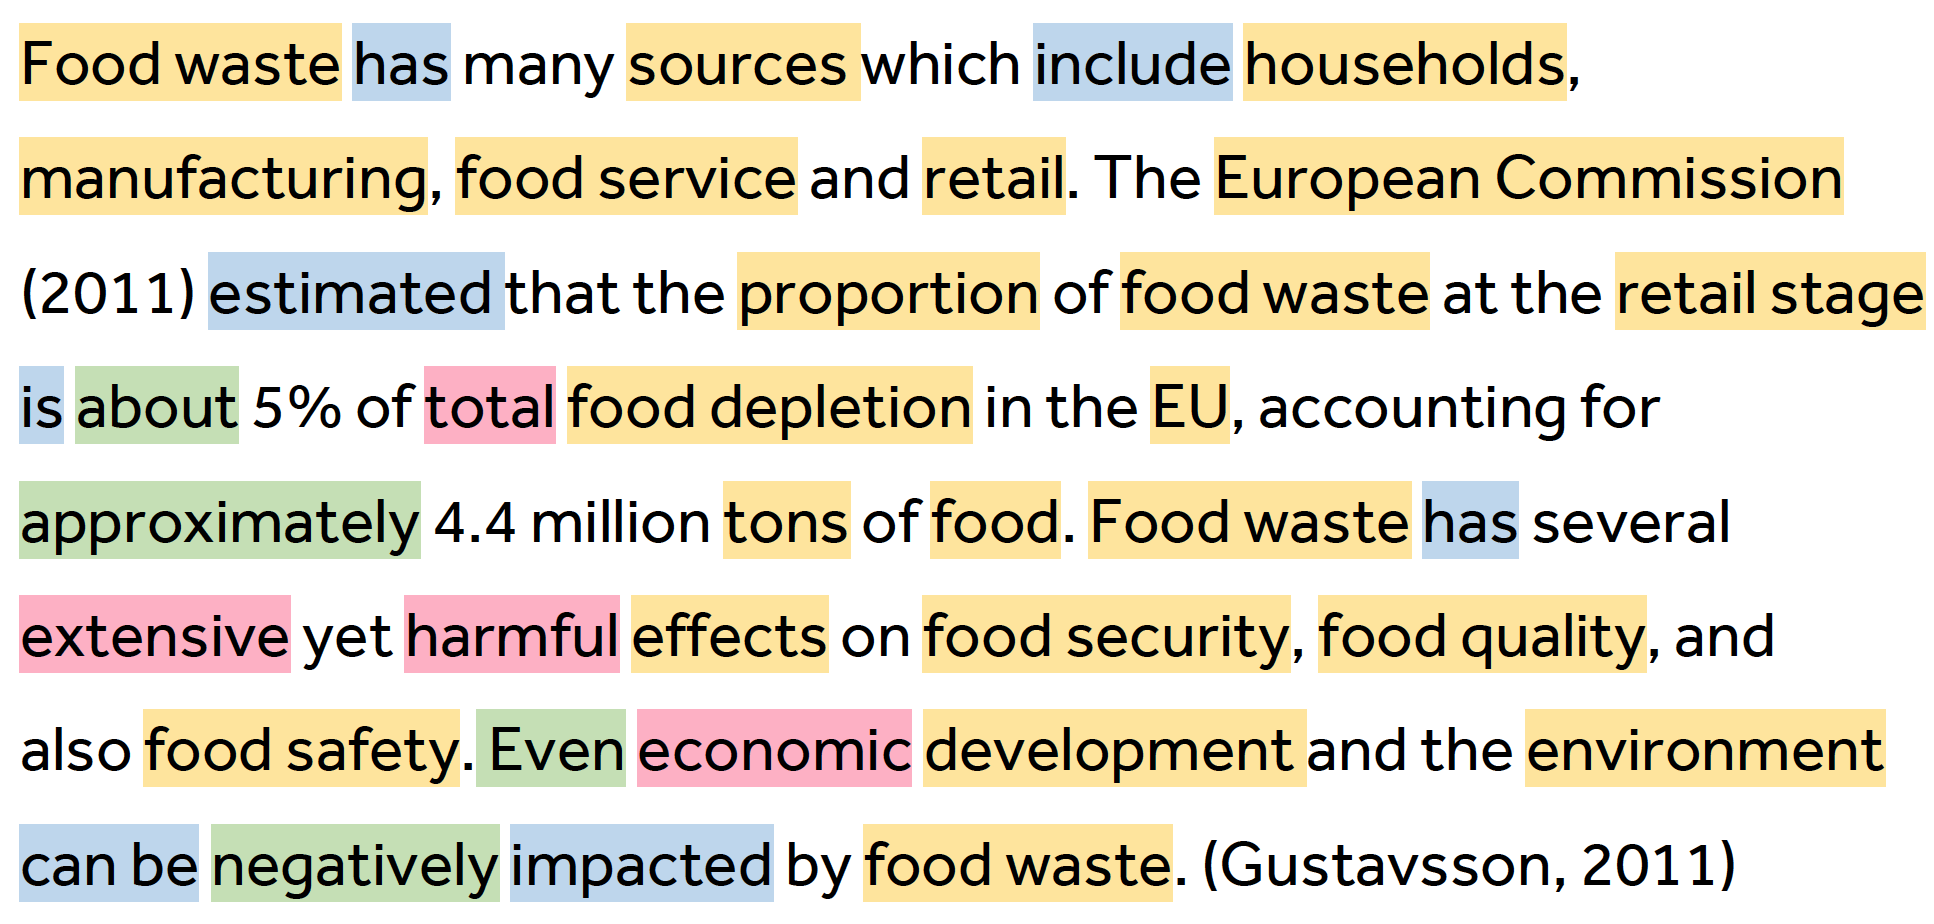 [Food waste](yellow) [has](blue) many [sources](yellow) which [include](blue) [households] (yellow), [manufacturing](yellow), [food](yellow) [service](yellow) and [retail](yellow). The [European Commission](yellow) (2011) [estimated](blue) that the [proportion](yellow) of [food waste](yellow) at the [retail stage](yellow) [is](blue) [about](green) 5% of [total](red) [food depletion](yellow) in the [EU](yellow), accounting for [approximately](green) 4.4 million [tons](yellow) of [food](yellow). [Food waste](yellow) [has](blue) several [extensive](red) yet [harmful](red) [effects](yellow) on [food security](yellow), [food quality](yellow), and also [food safety](yellow). Even [economic](red) [development](yellow) and the [environment](yellow) [can be](blue) [negatively](green) [impacted](blue) by [food waste](yellow) (Gustavsson, 2011).